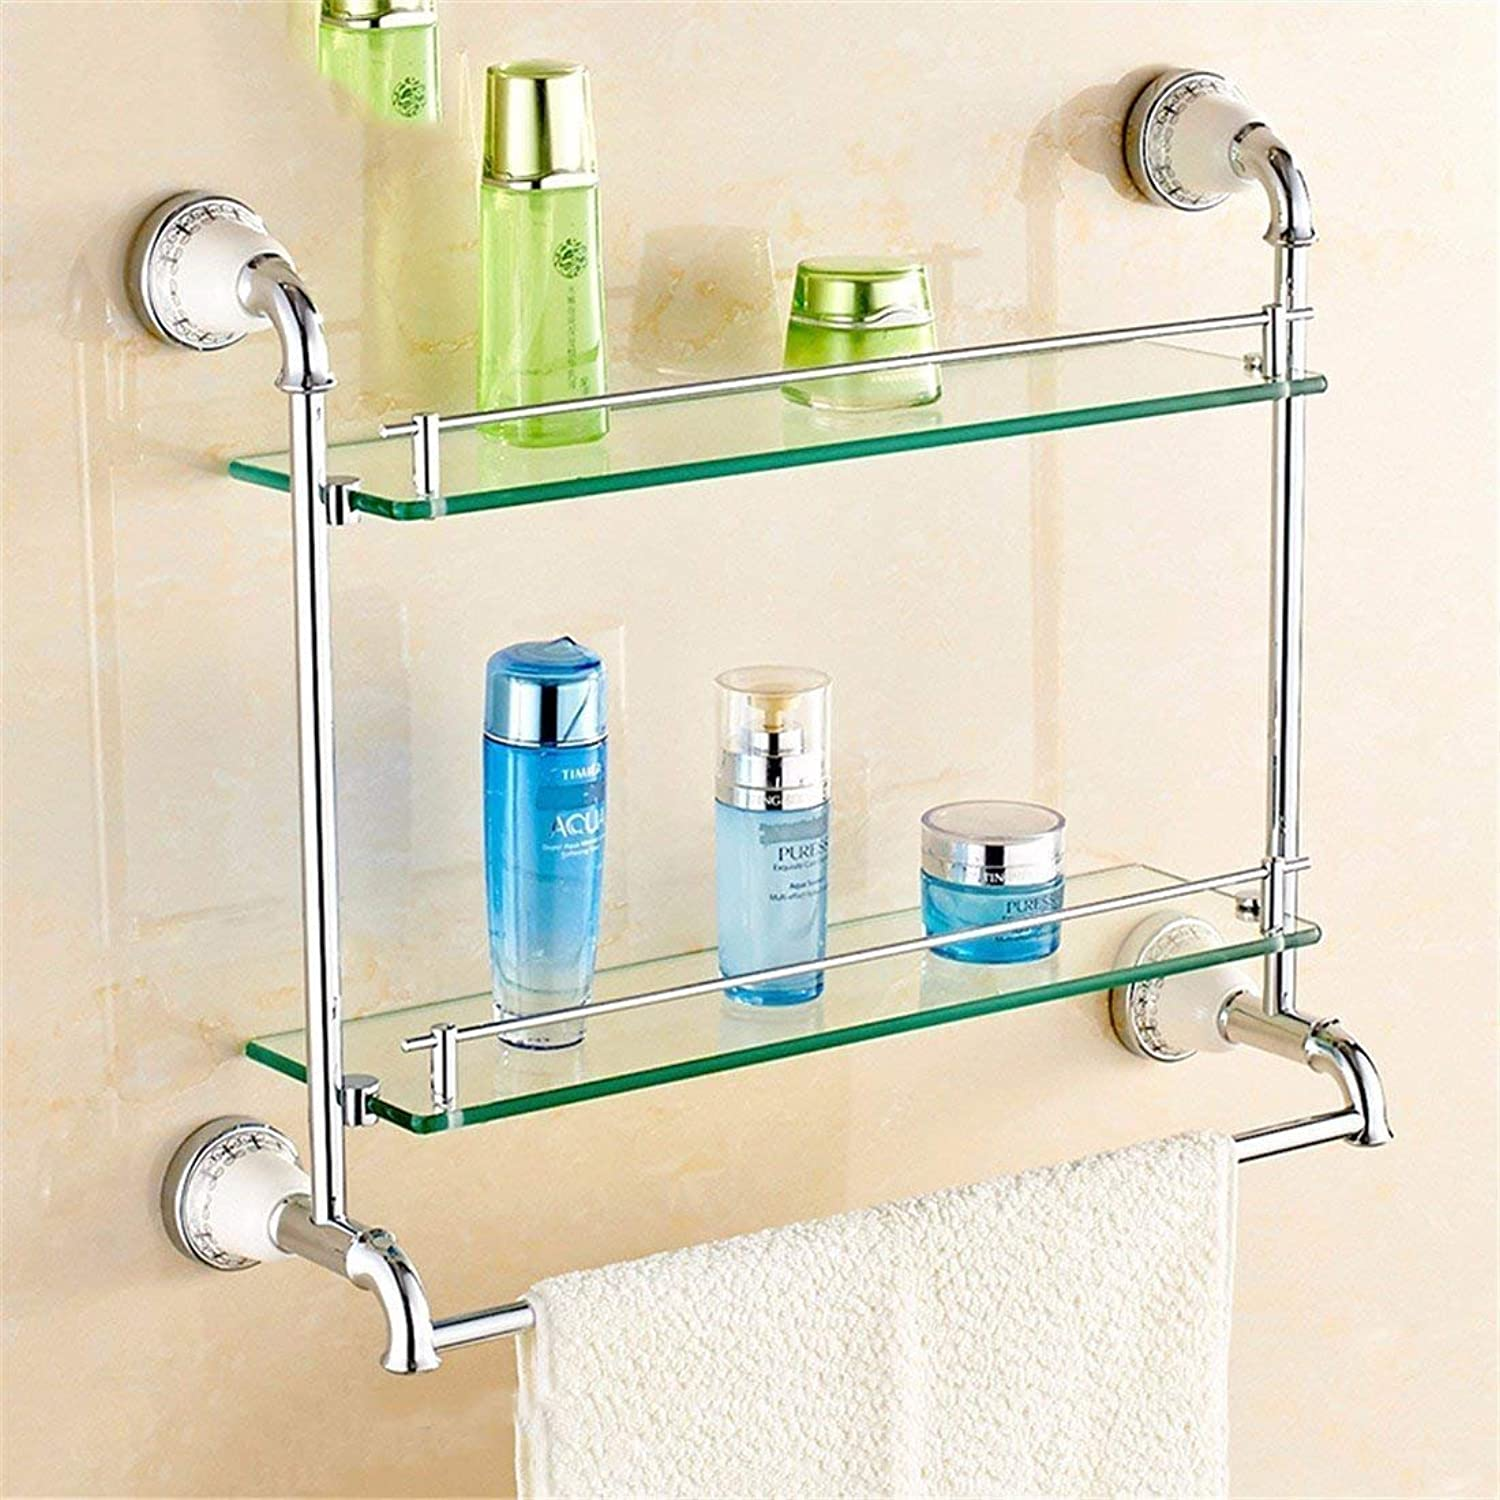 European Copper Chrome Plated, Base in Ceramics, Bathroom, Toilet Bar Napkin,2 Batteries